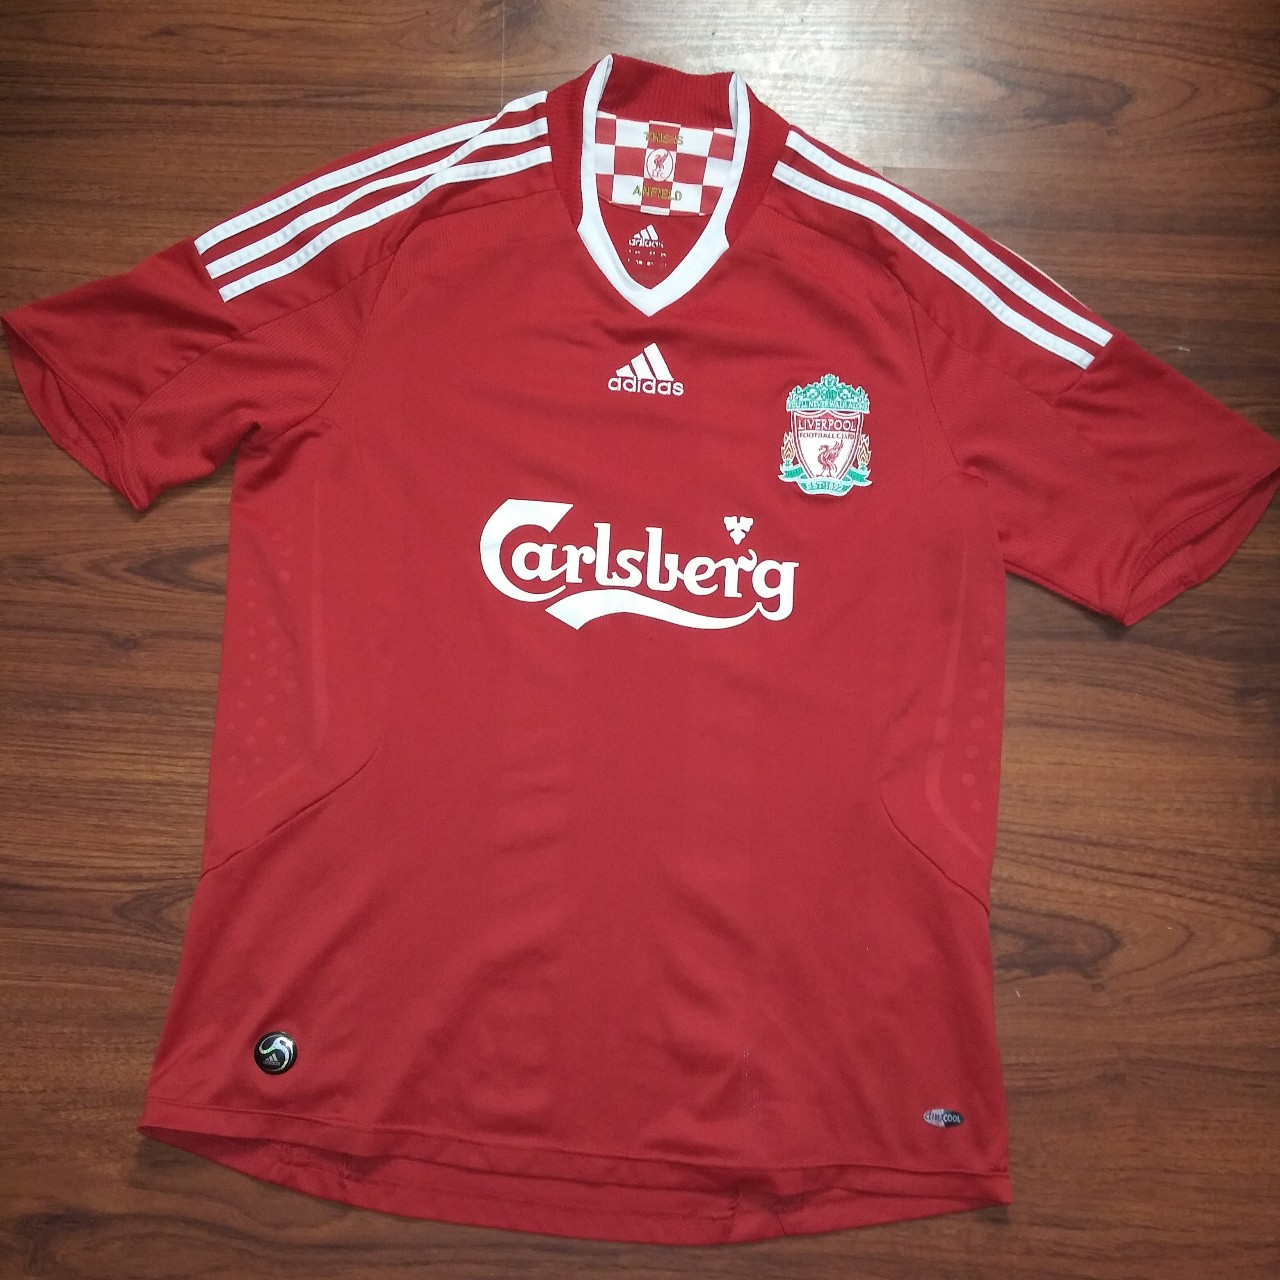 on sale 7e233 bd243 Liverpool adidas official soccer jersey in great... - Depop